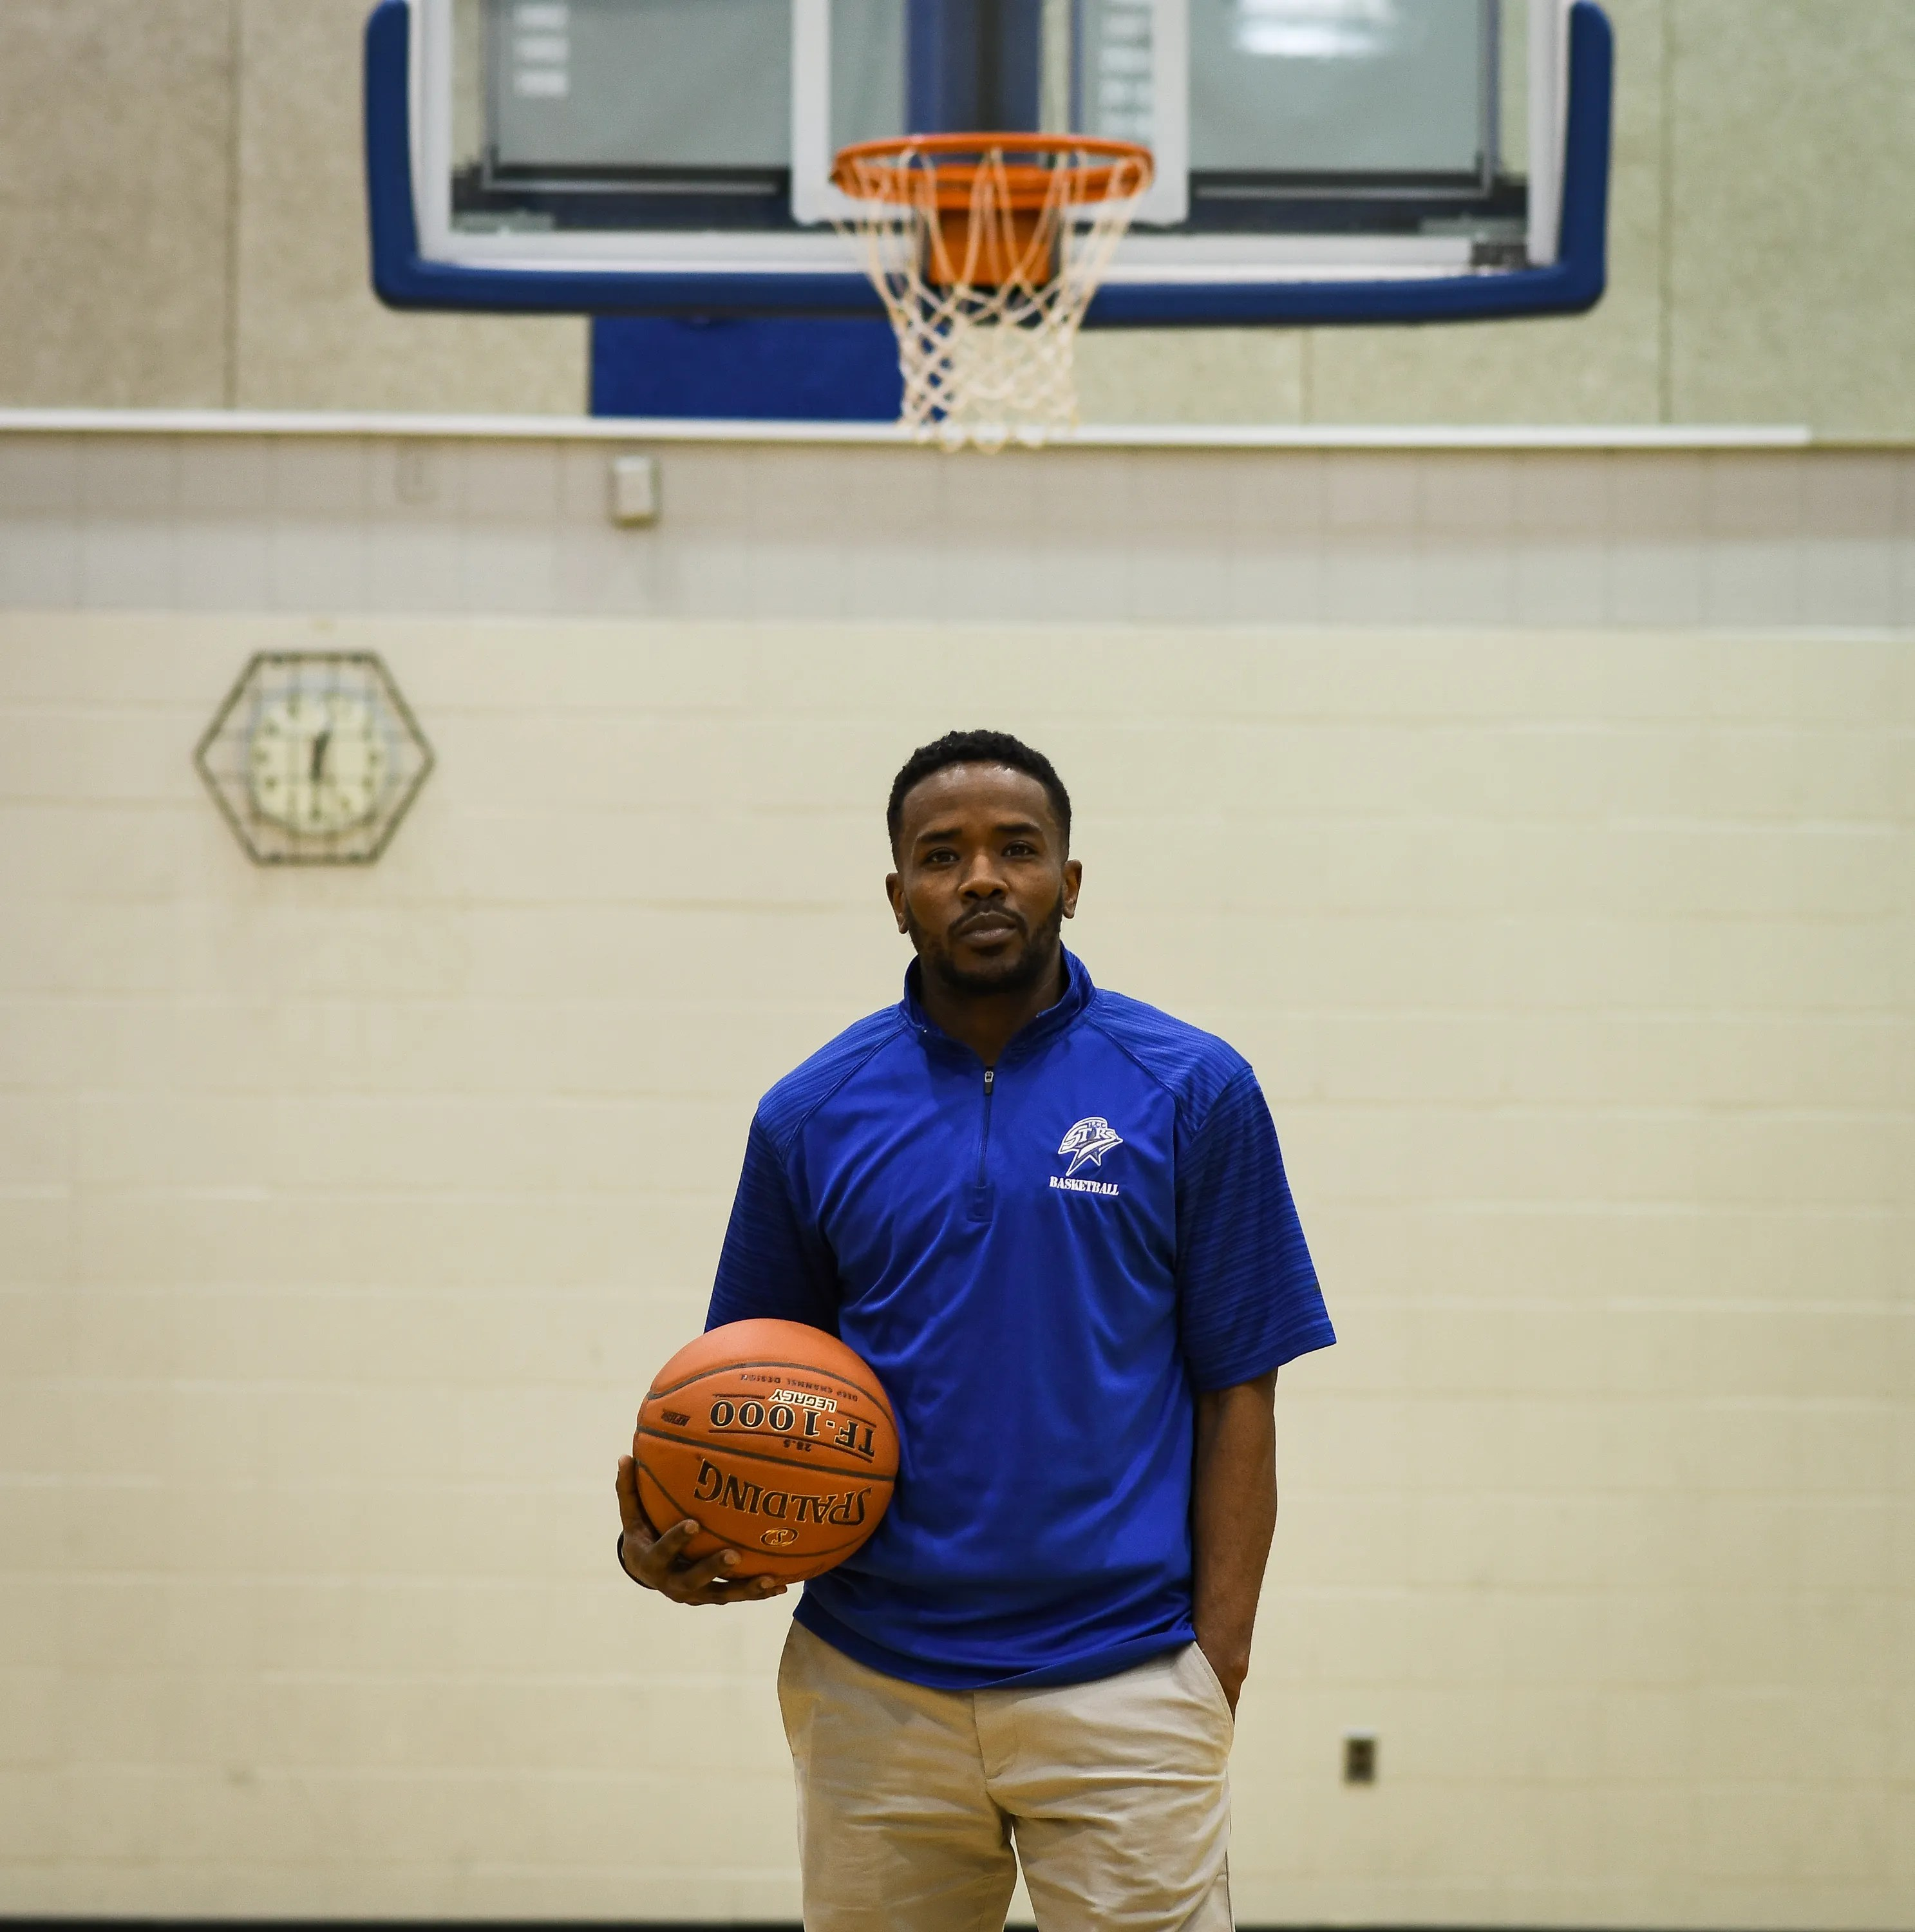 """""""Basketball saved me,"""" Layne Ingram says. """"I can't imagine where I would be if I didn't have basketball because it teaches you how to be a team player, it teaches you how to communicate, it teaches you how to work hard."""""""